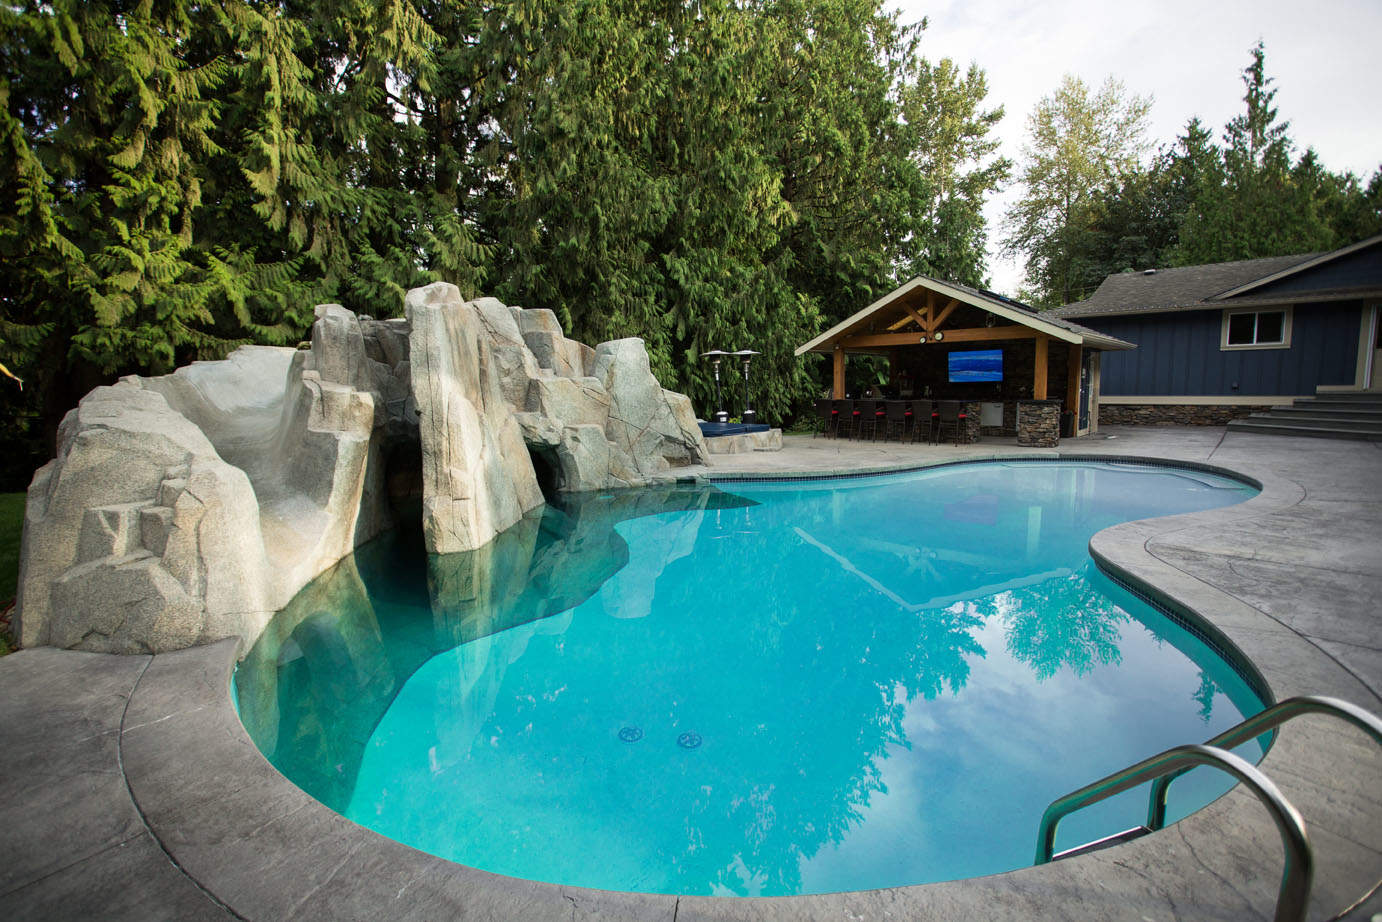 Residential gallery outdoor renovations azuro concepts for Pool design concepts